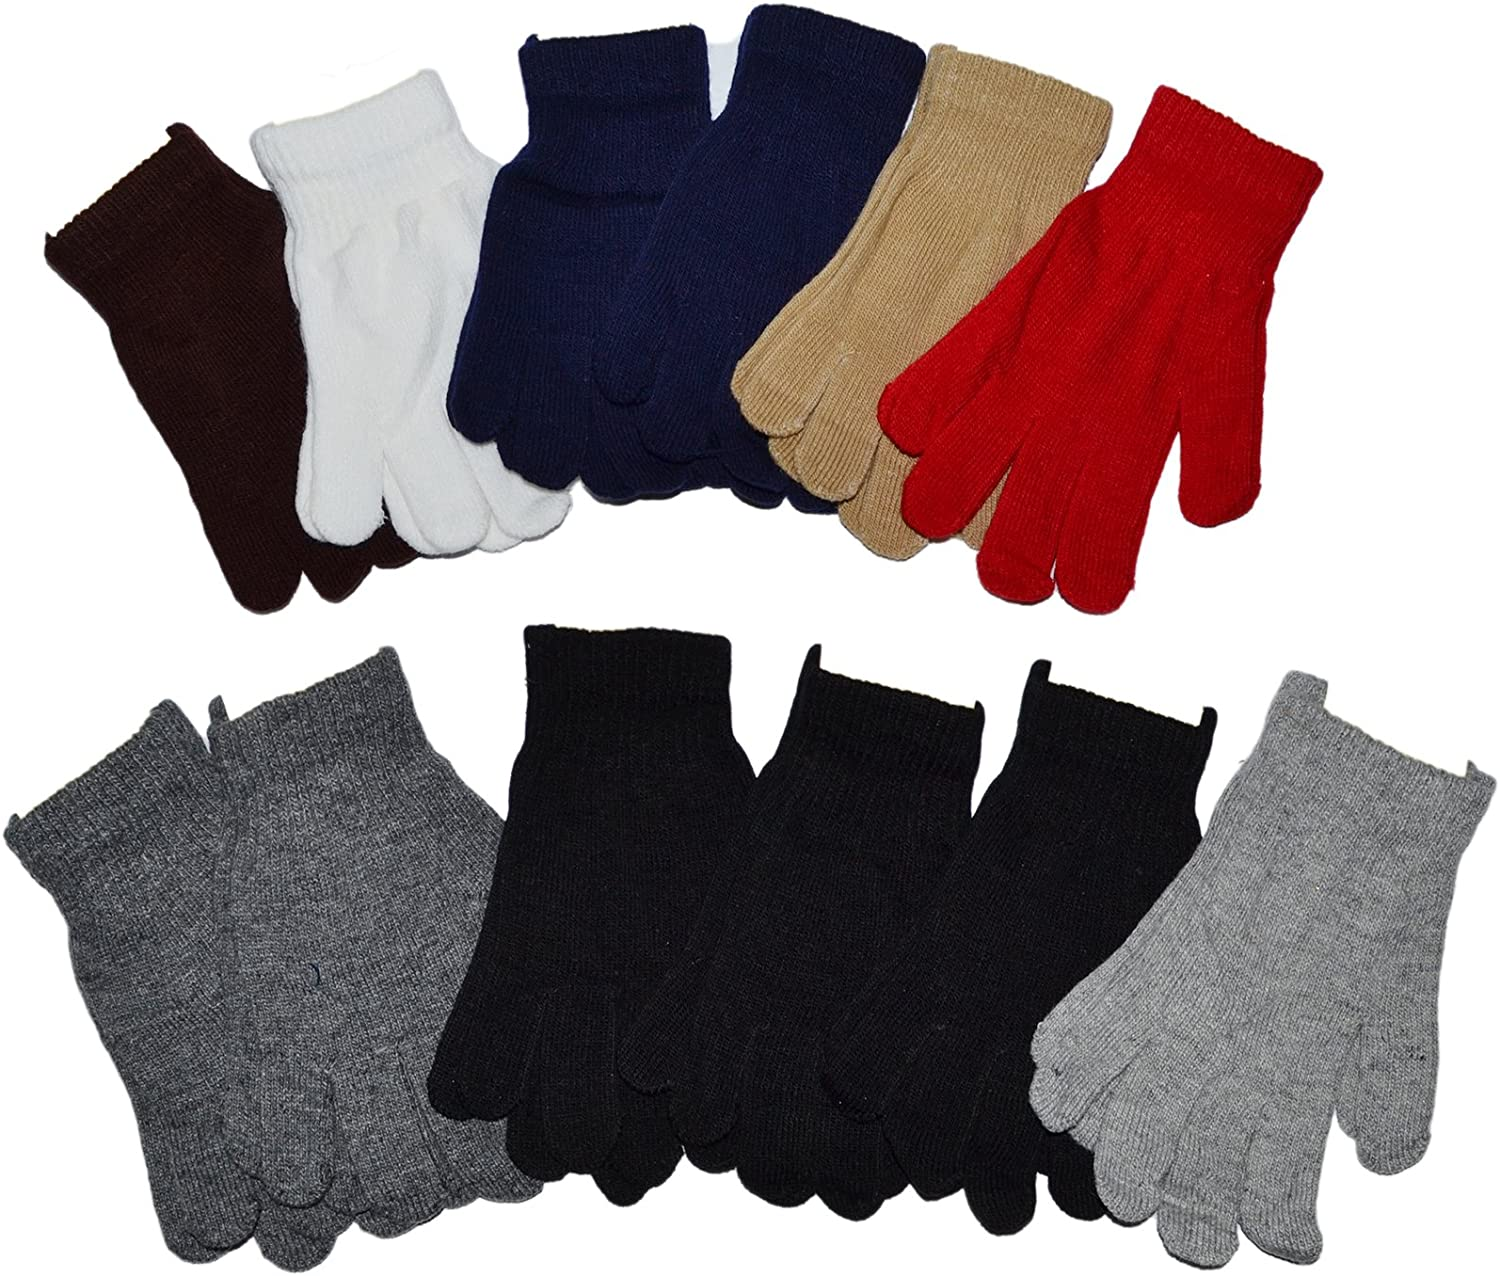 OPT. SEAL limited product Wholesale Outlet SALE Lot 12 Pairs Adult Plain Solid Knit Magic Gloves